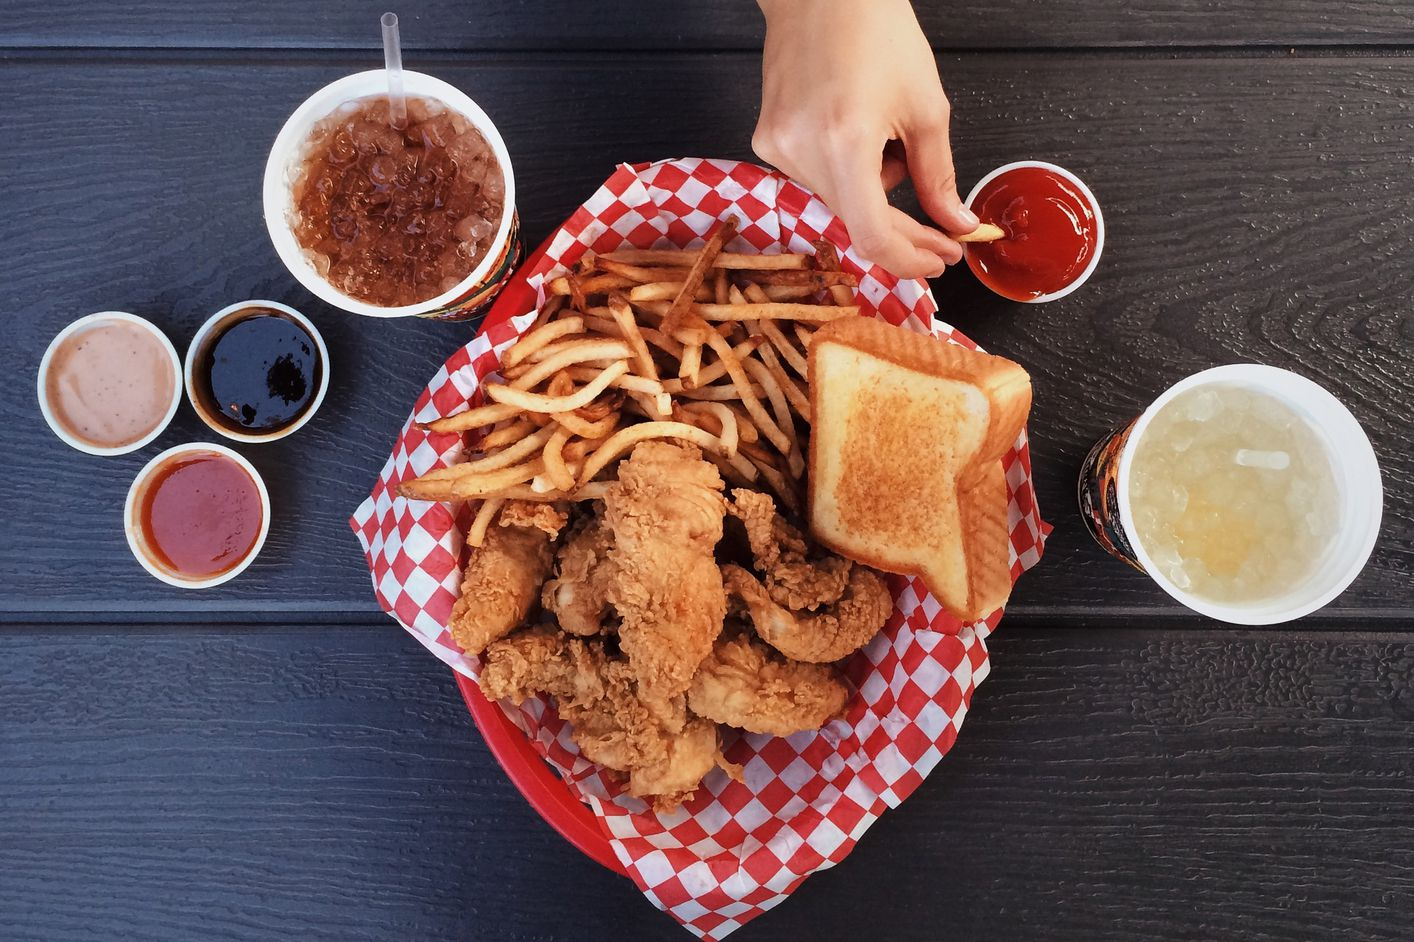 How Processed Foods Can Affect Your Health